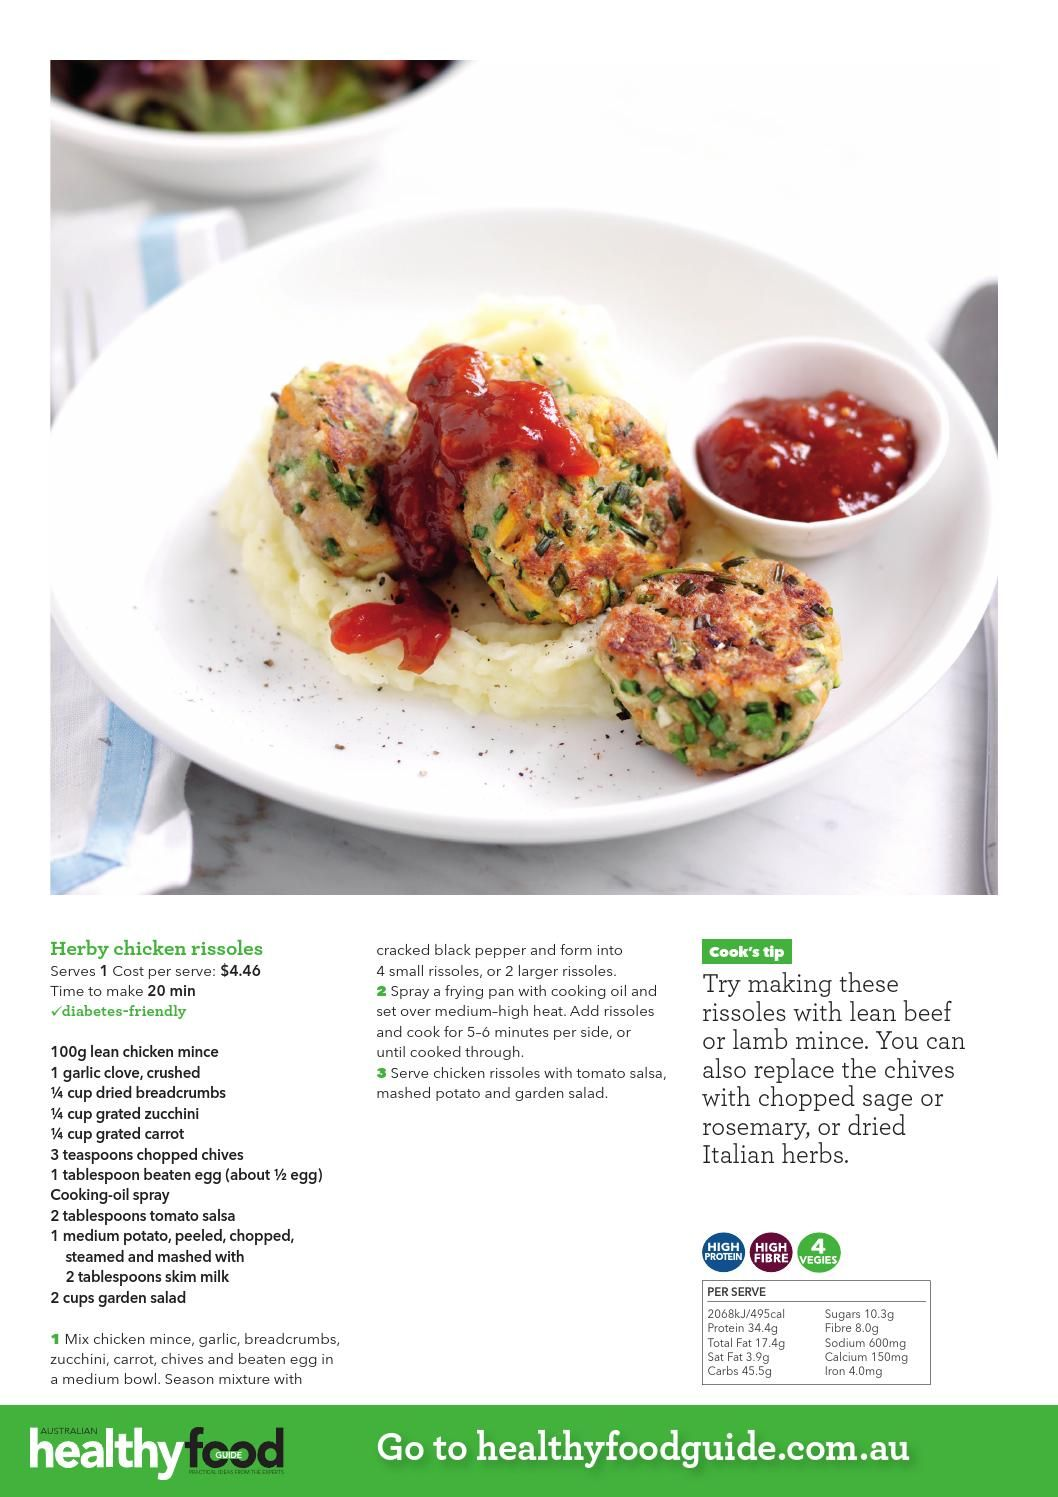 Healthy food guide all time favourite recipes favorite recipes healthy food guide all time favourite recipes forumfinder Gallery